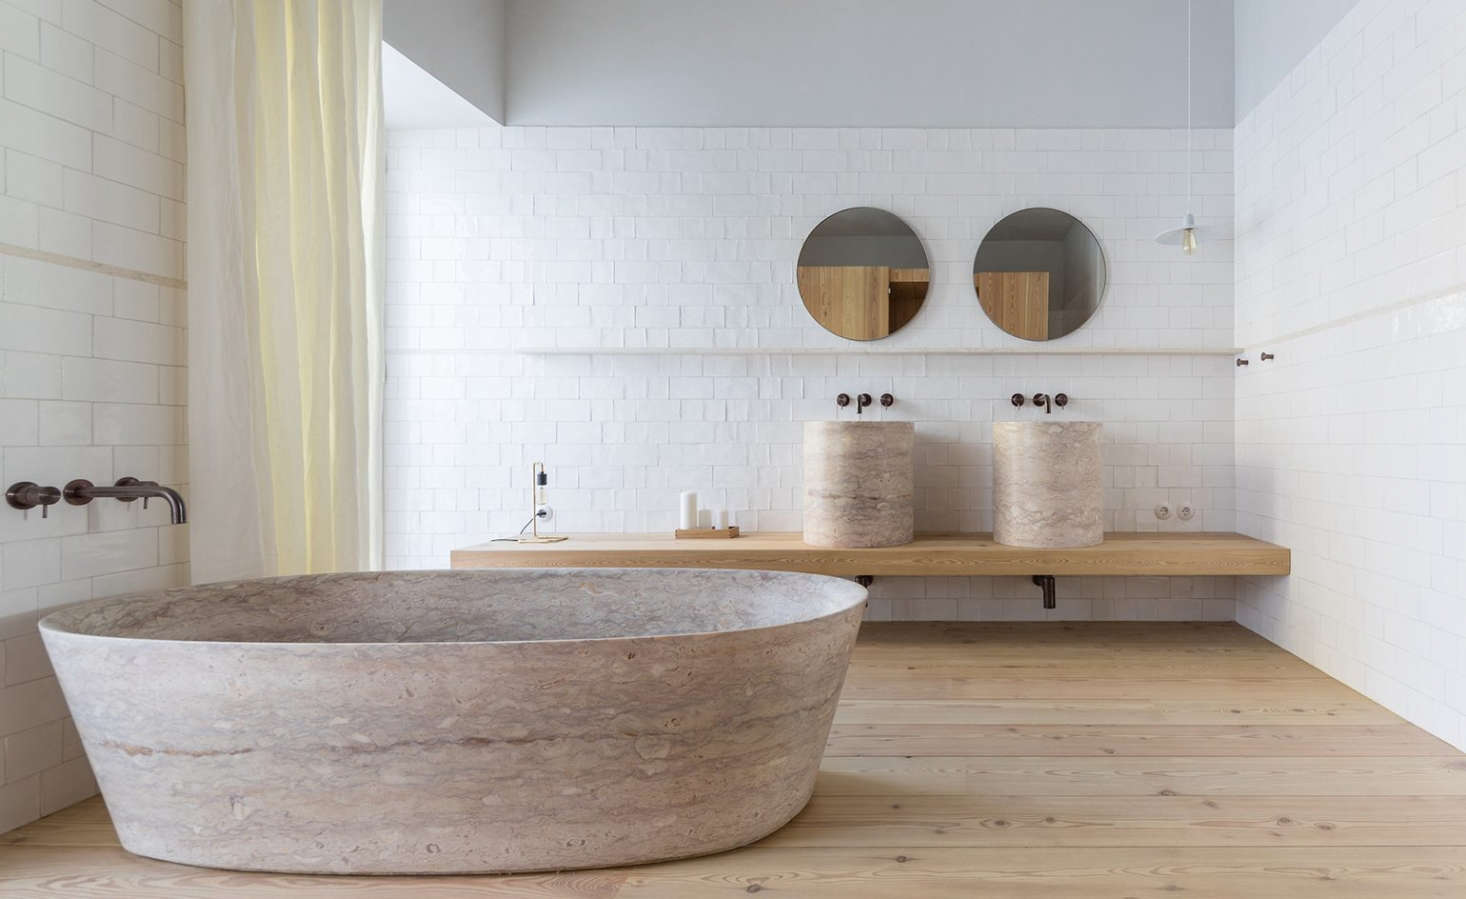 Bathrooms are generously sized, with pine wood floors and hand-cuttiles.